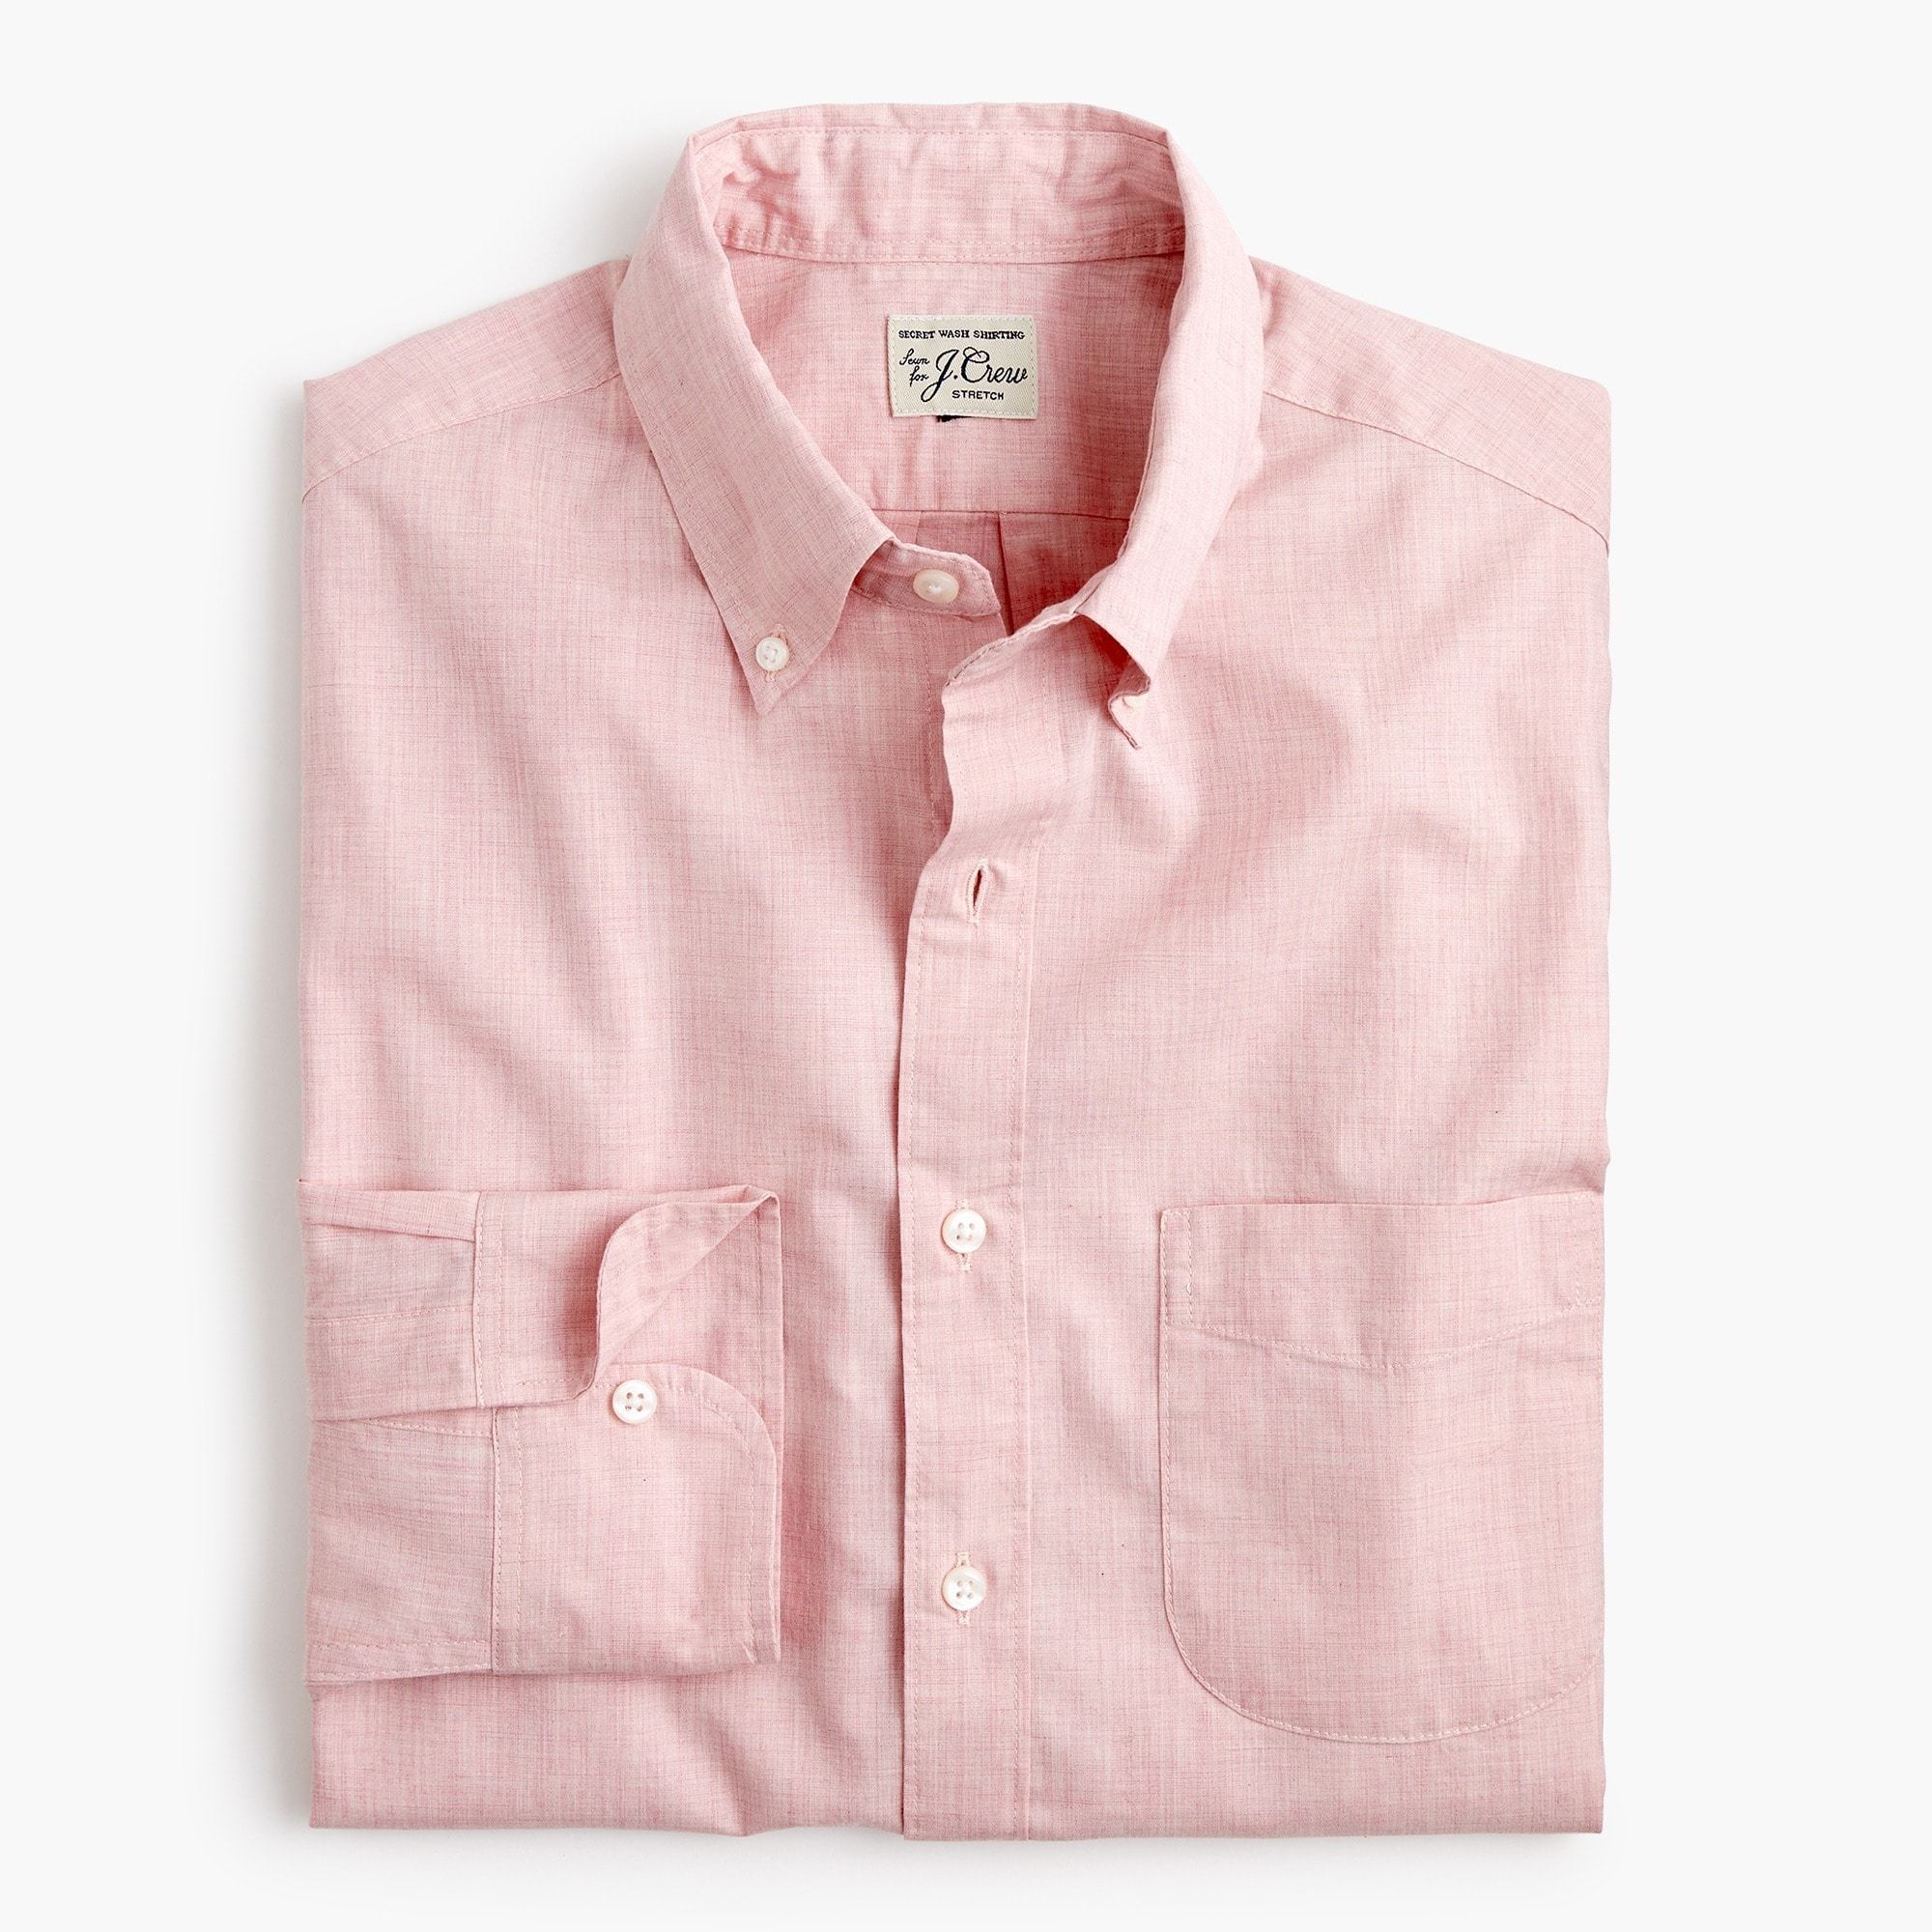 mens Stretch Secret Wash shirt in solid heathered poplin